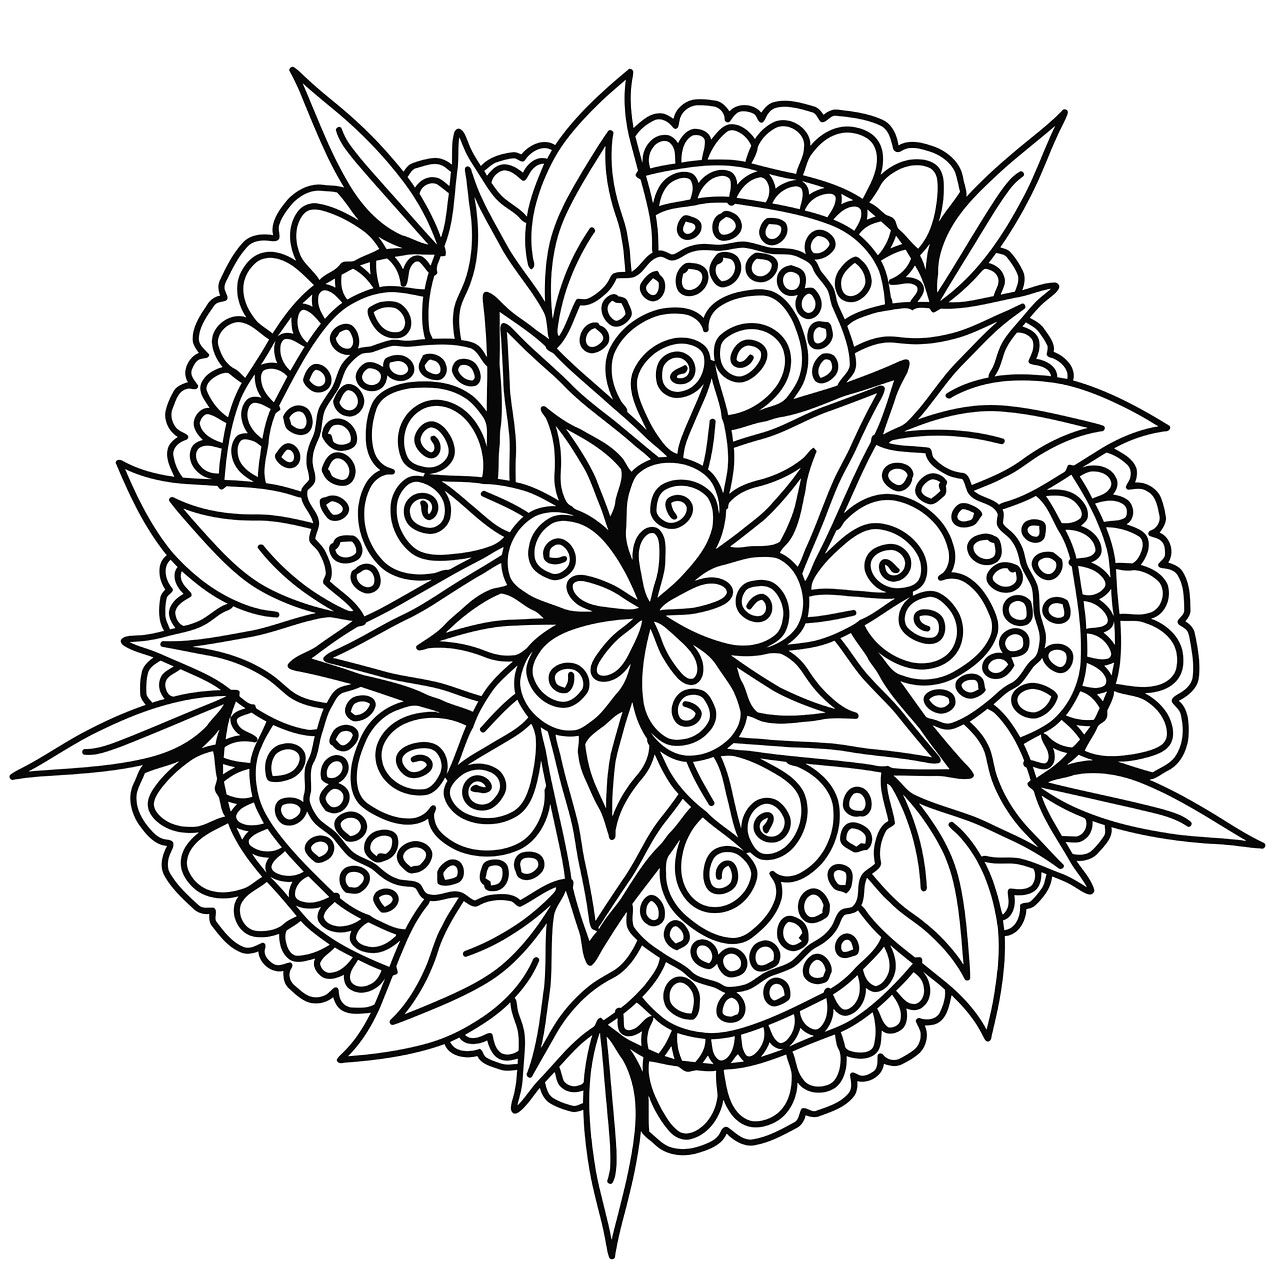 mandala pictures to color mandala coloring pages for kids to download and print for free color pictures mandala to